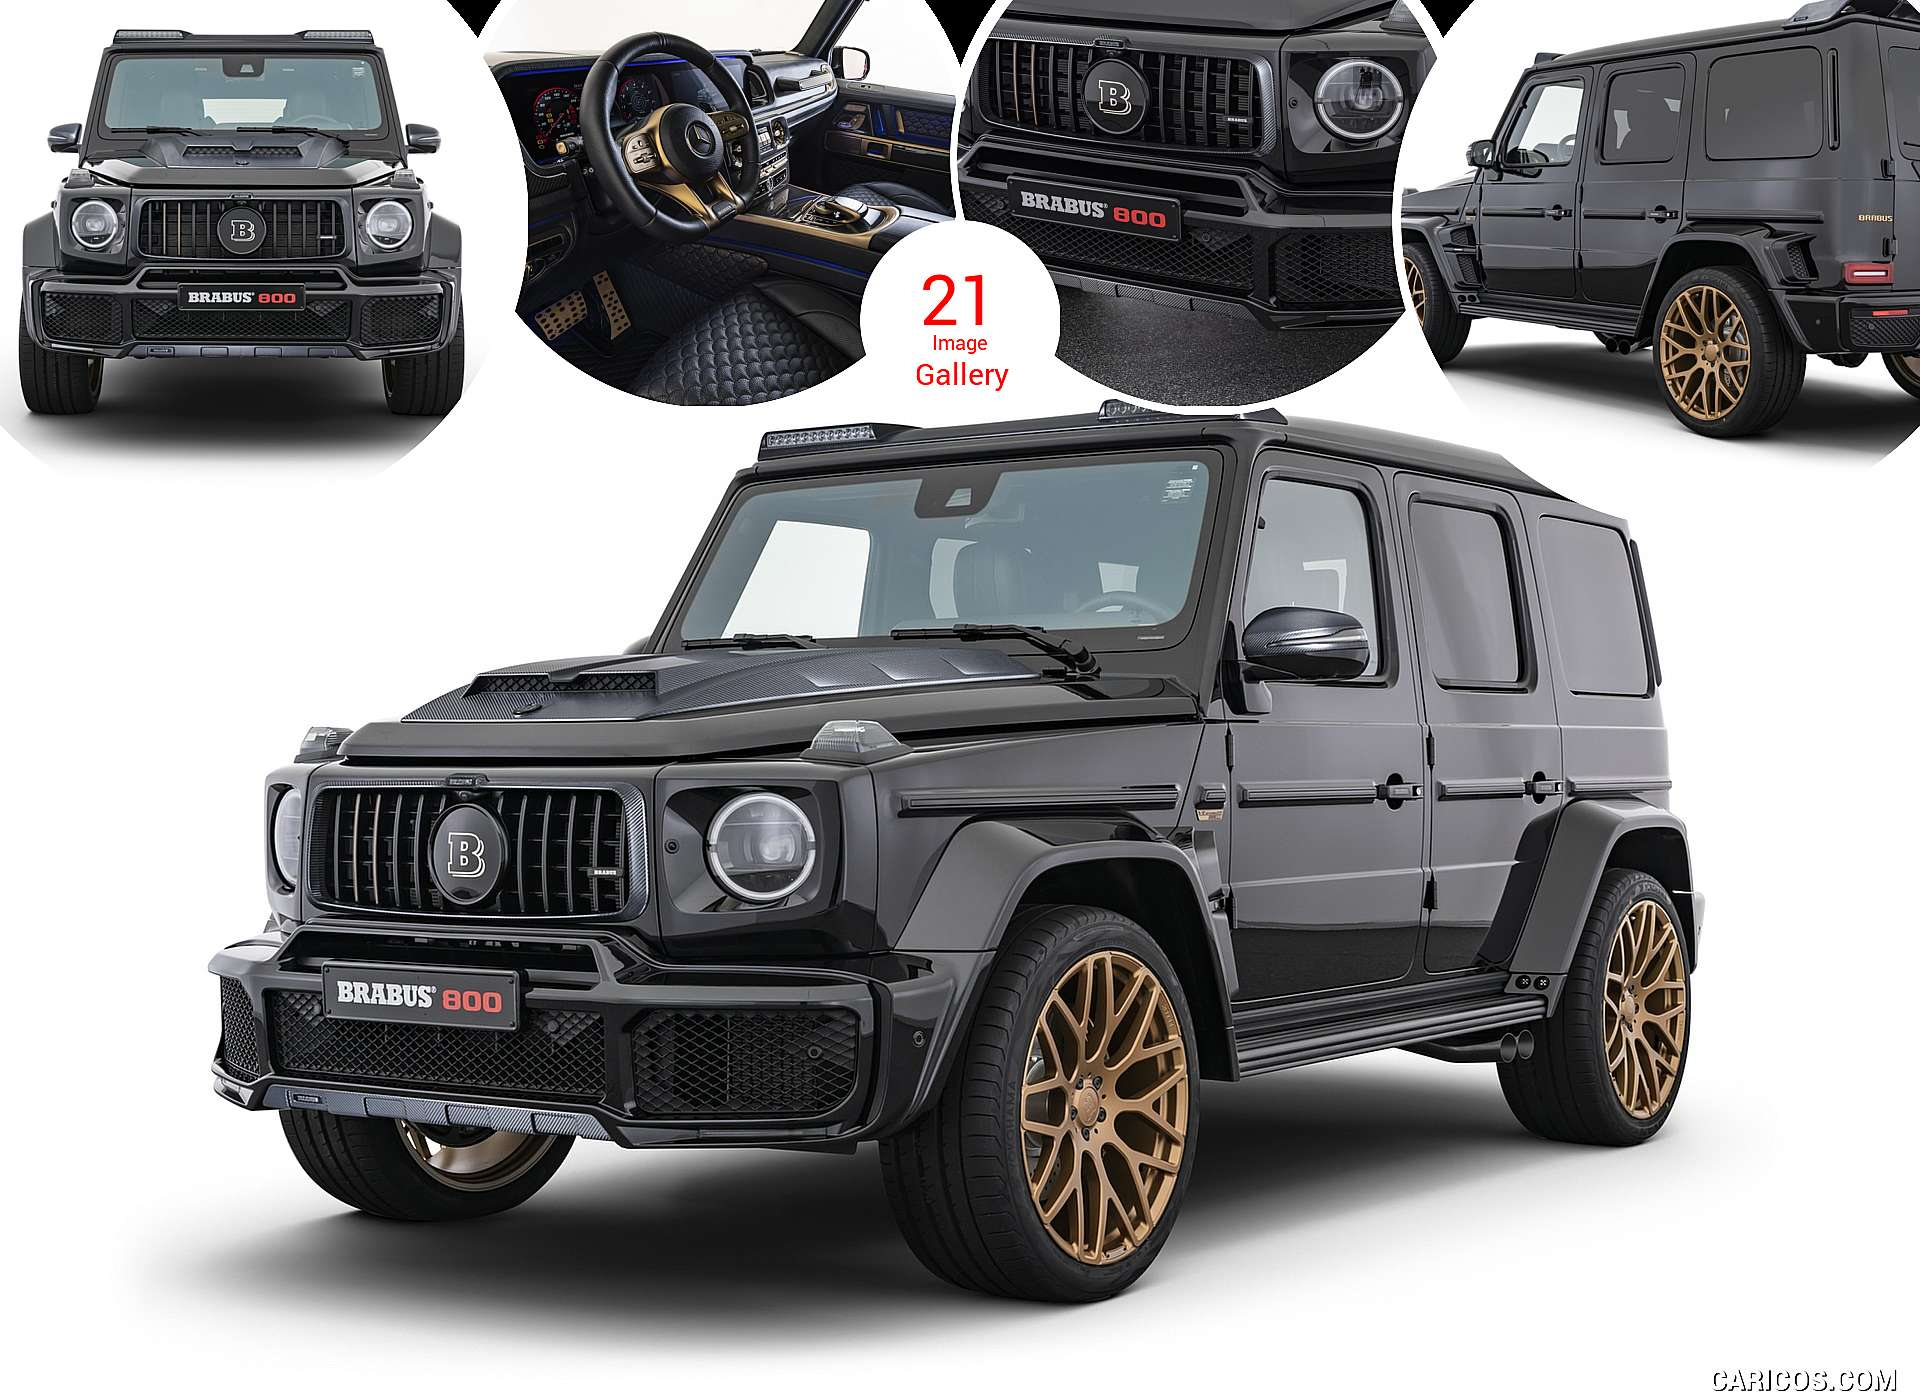 2020 BRABUS 800 BLACK and GOLD EDITION